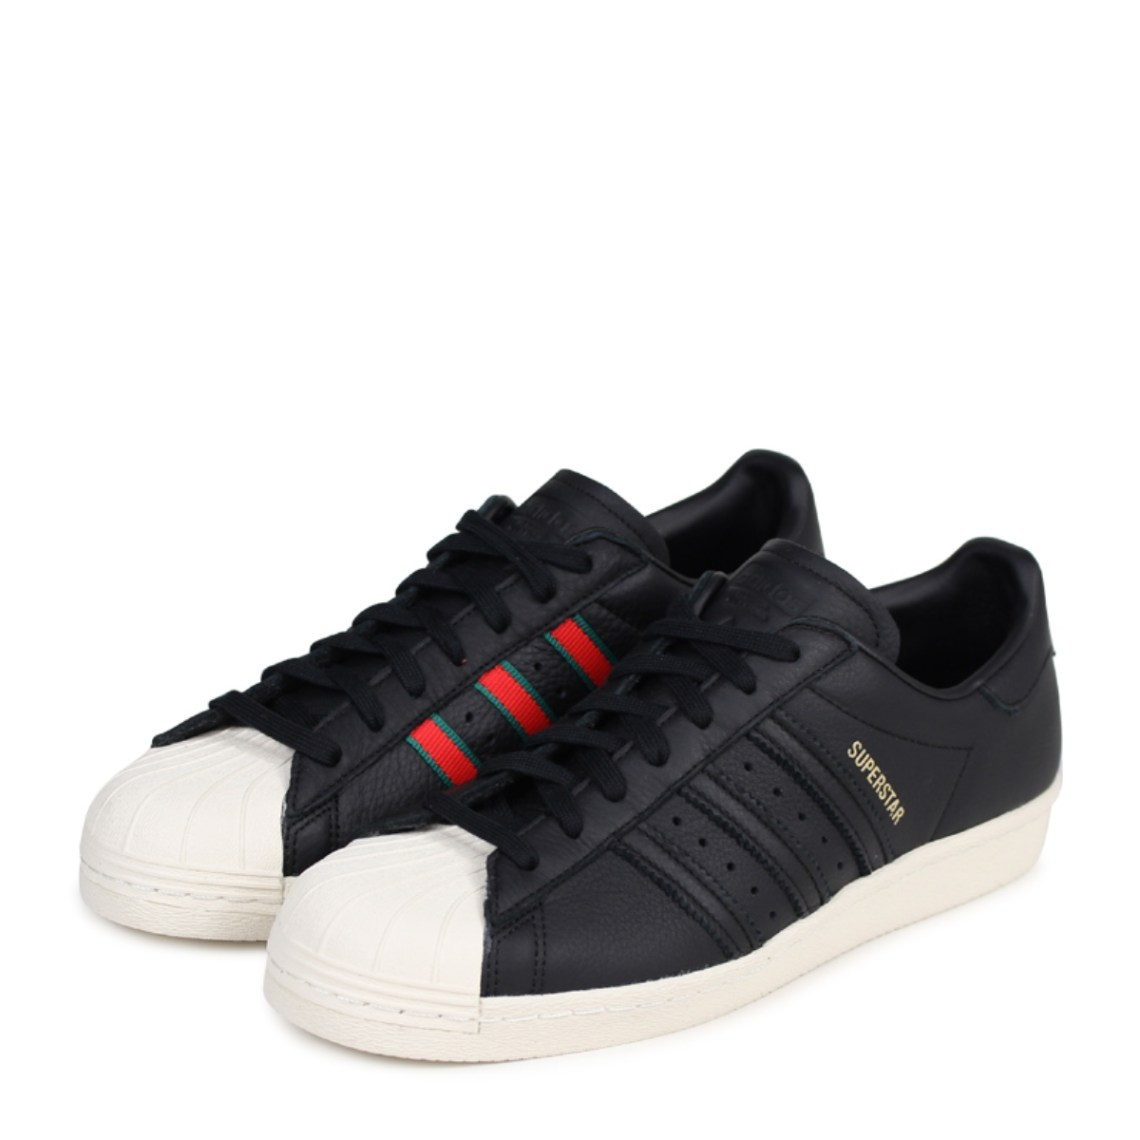 Adidas Supersatr 1